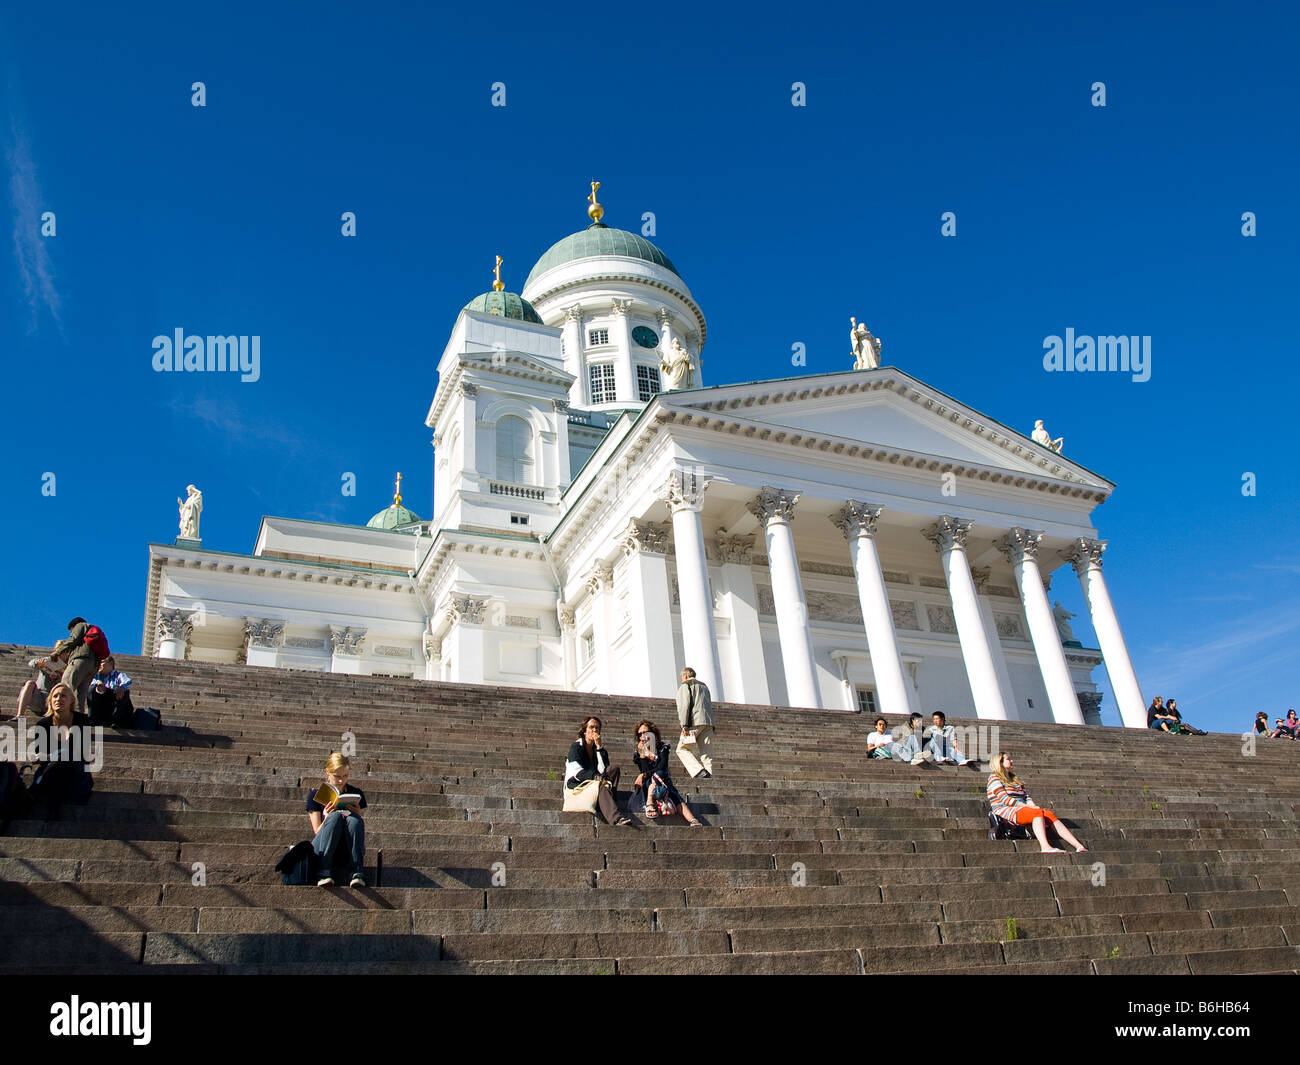 Sitting on the steps of Tuomiokirkko, one of Helsinki, Finland's most recognizable landmarks. - Stock Image